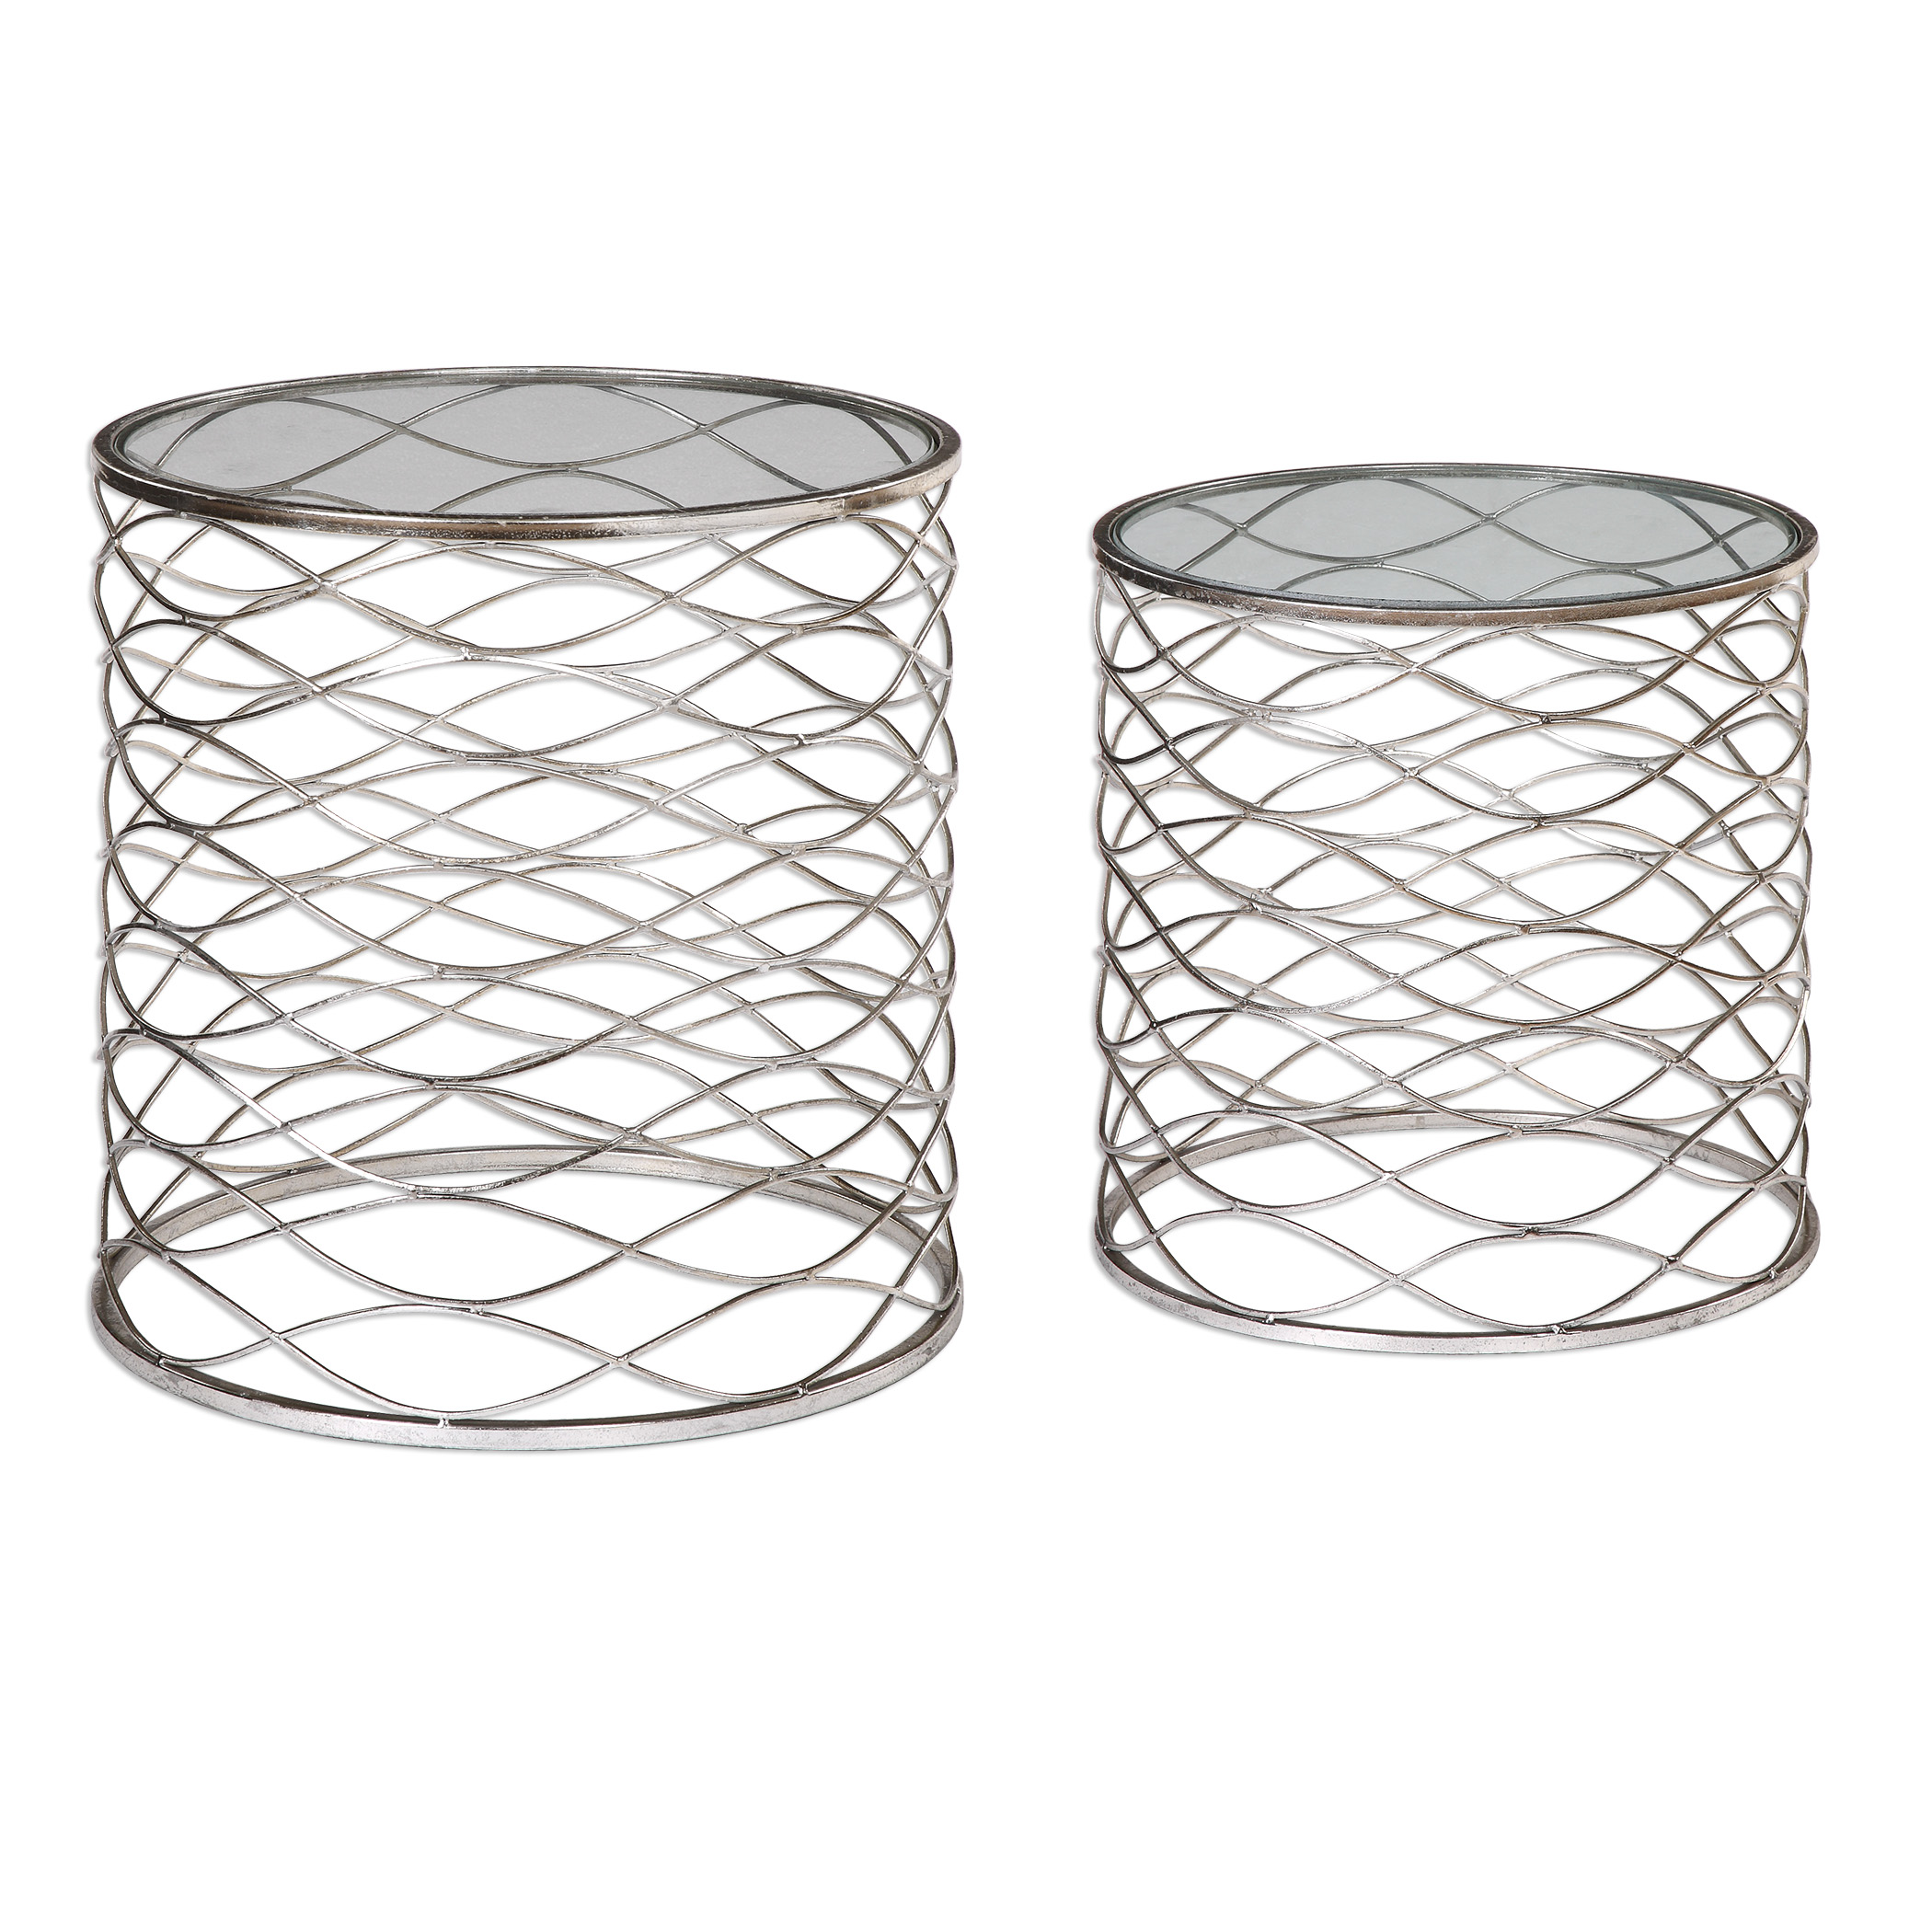 Uttermost Accent Furniture Aida Iron Cage Accent Tables, S/2 - Item Number: 24628